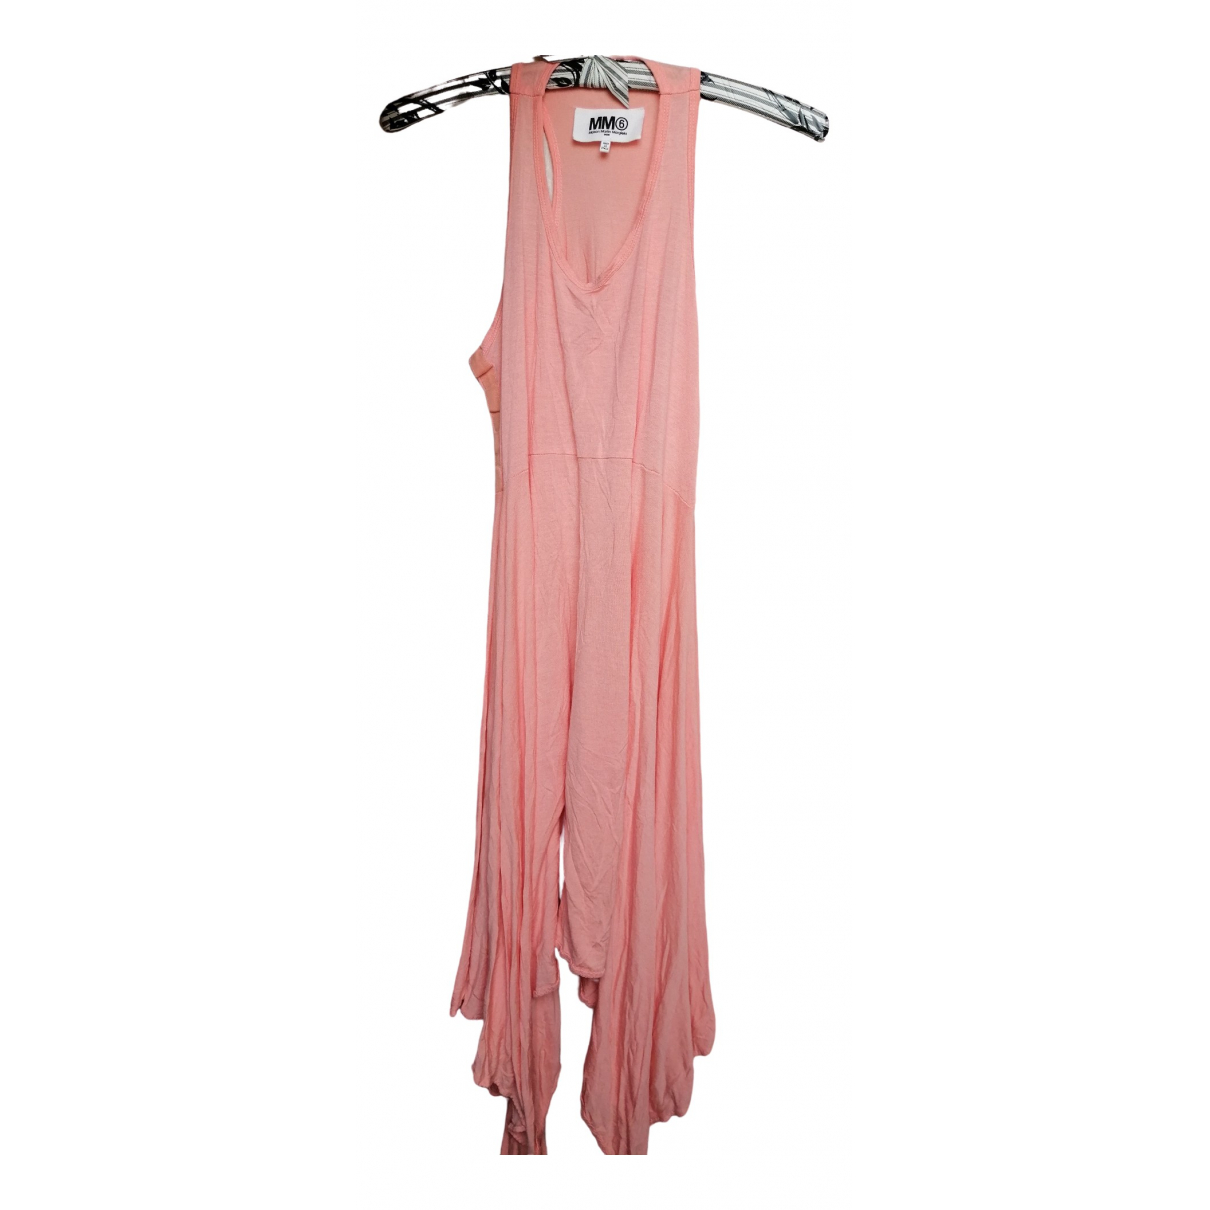 Mm6 \N Pink dress for Women S International